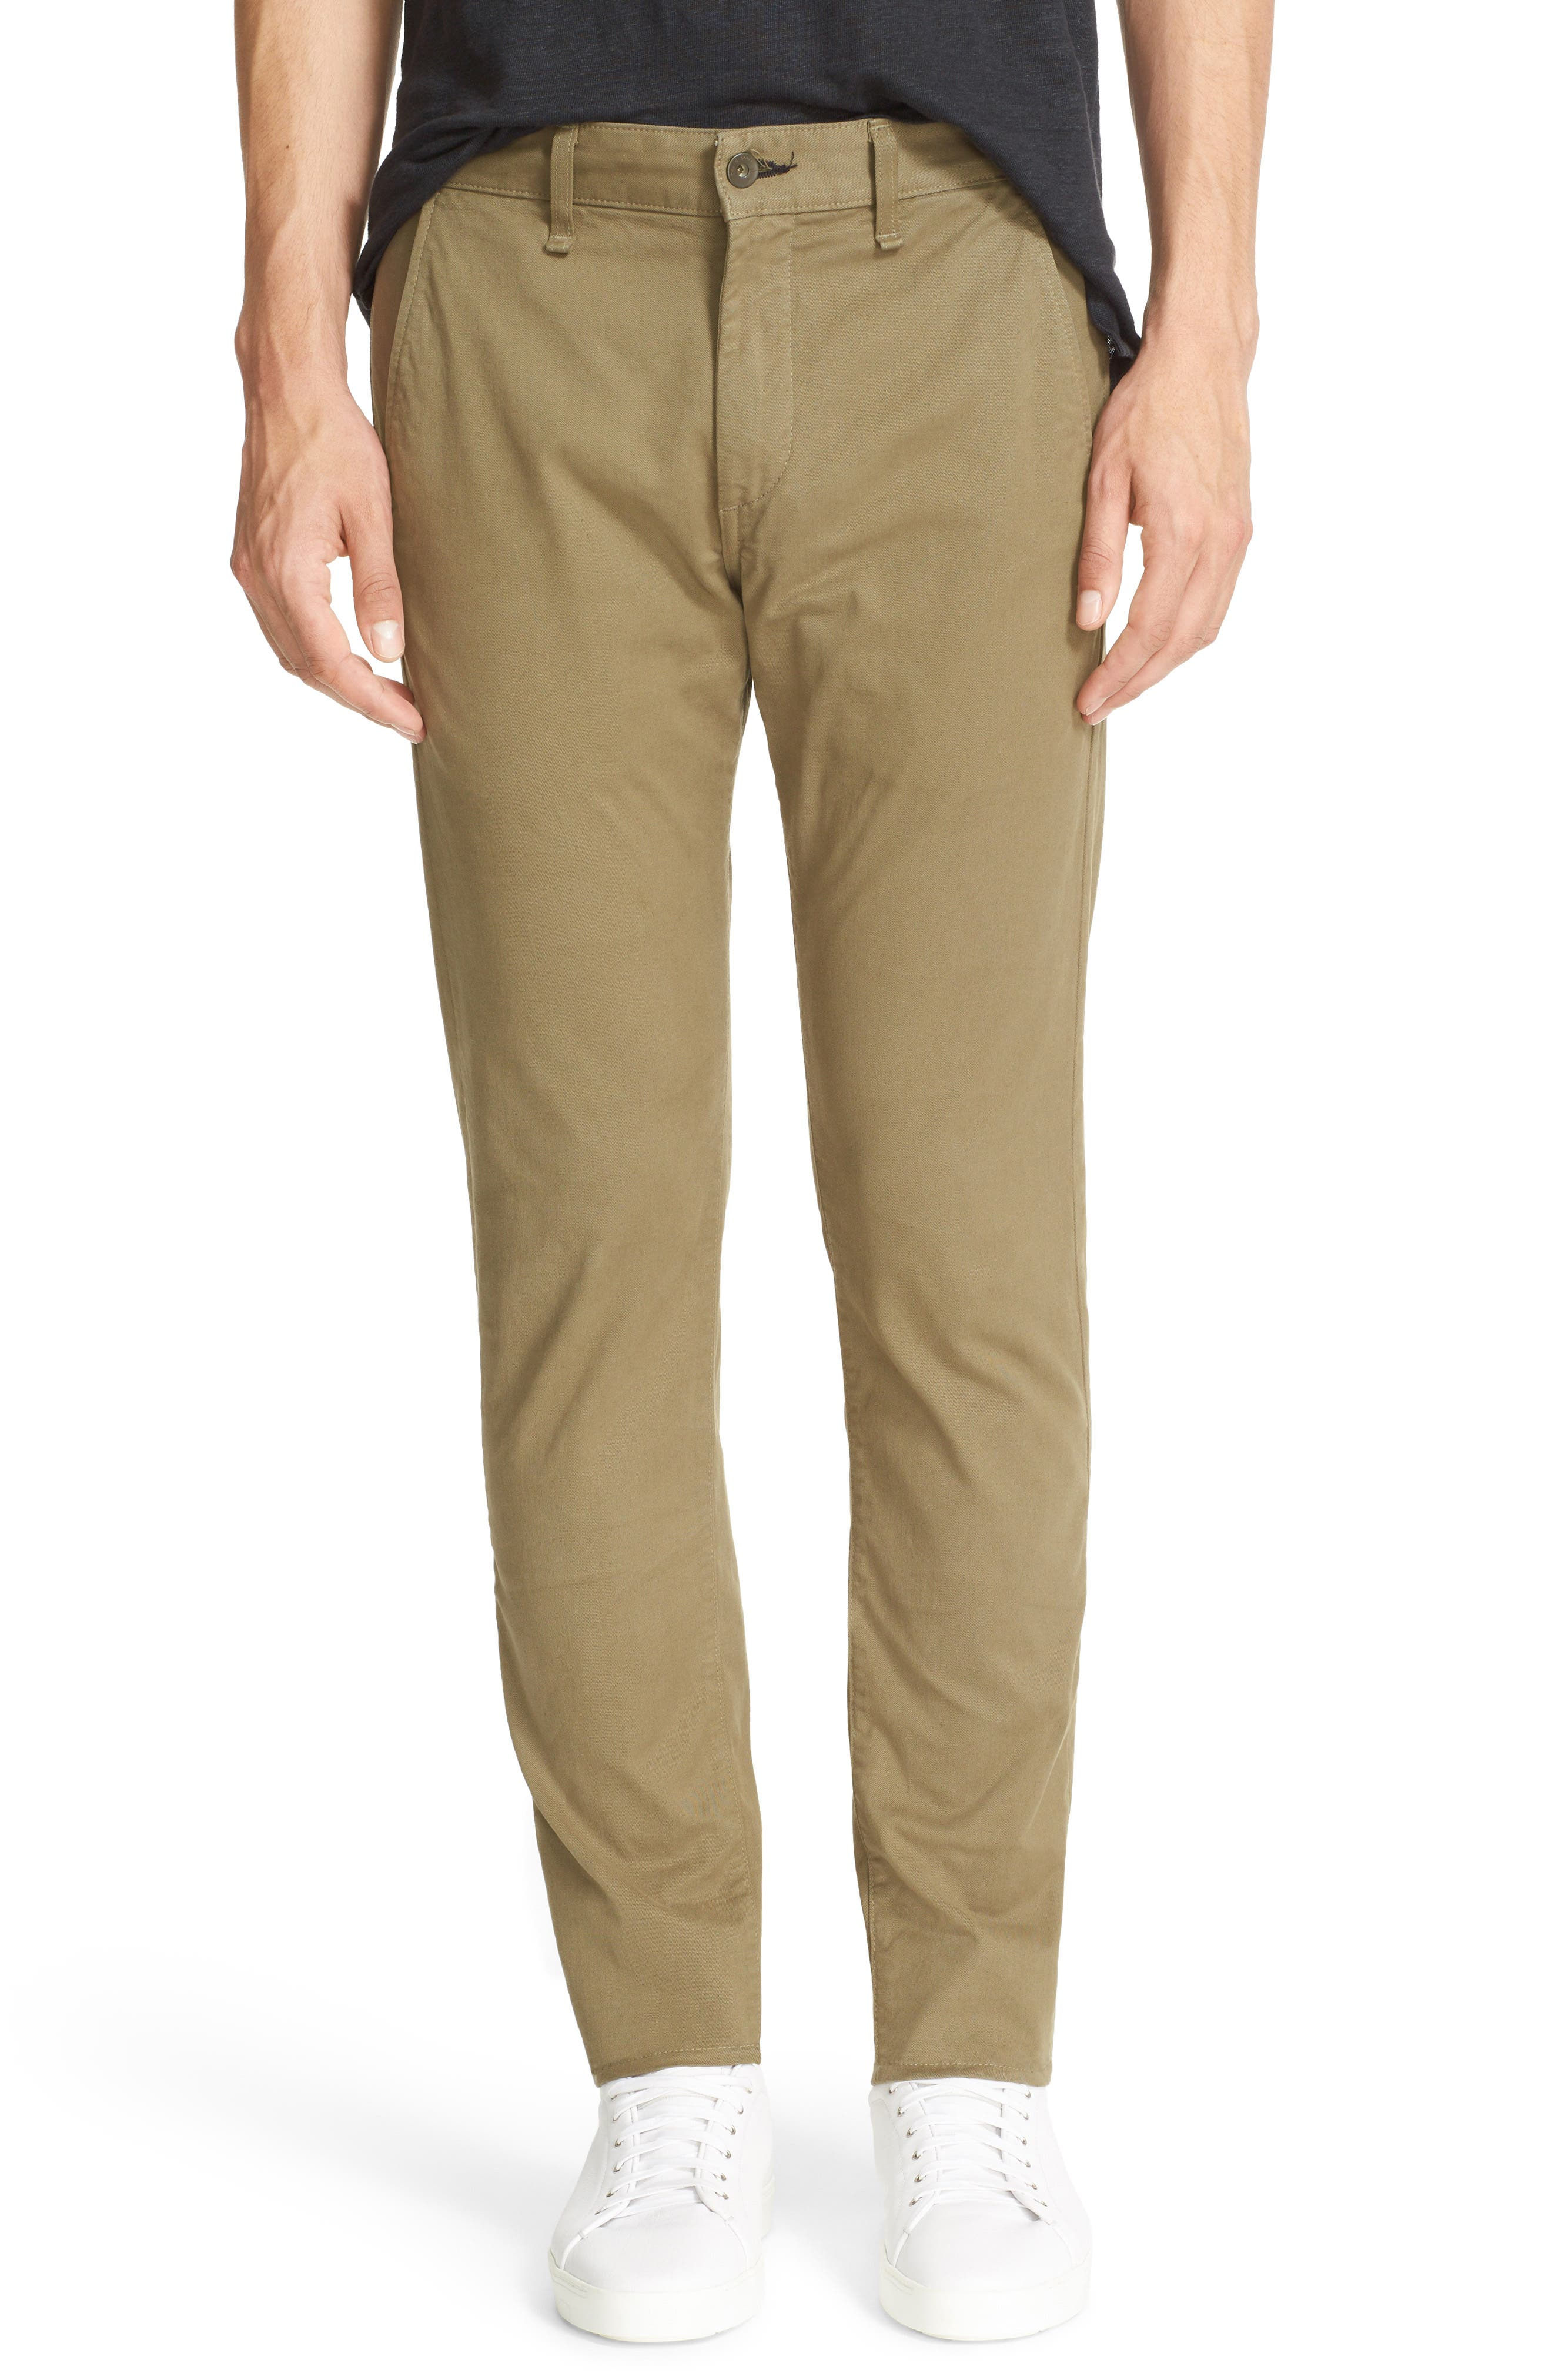 Fit 1 Chinos,                         Main,                         color, ARMY GREEN